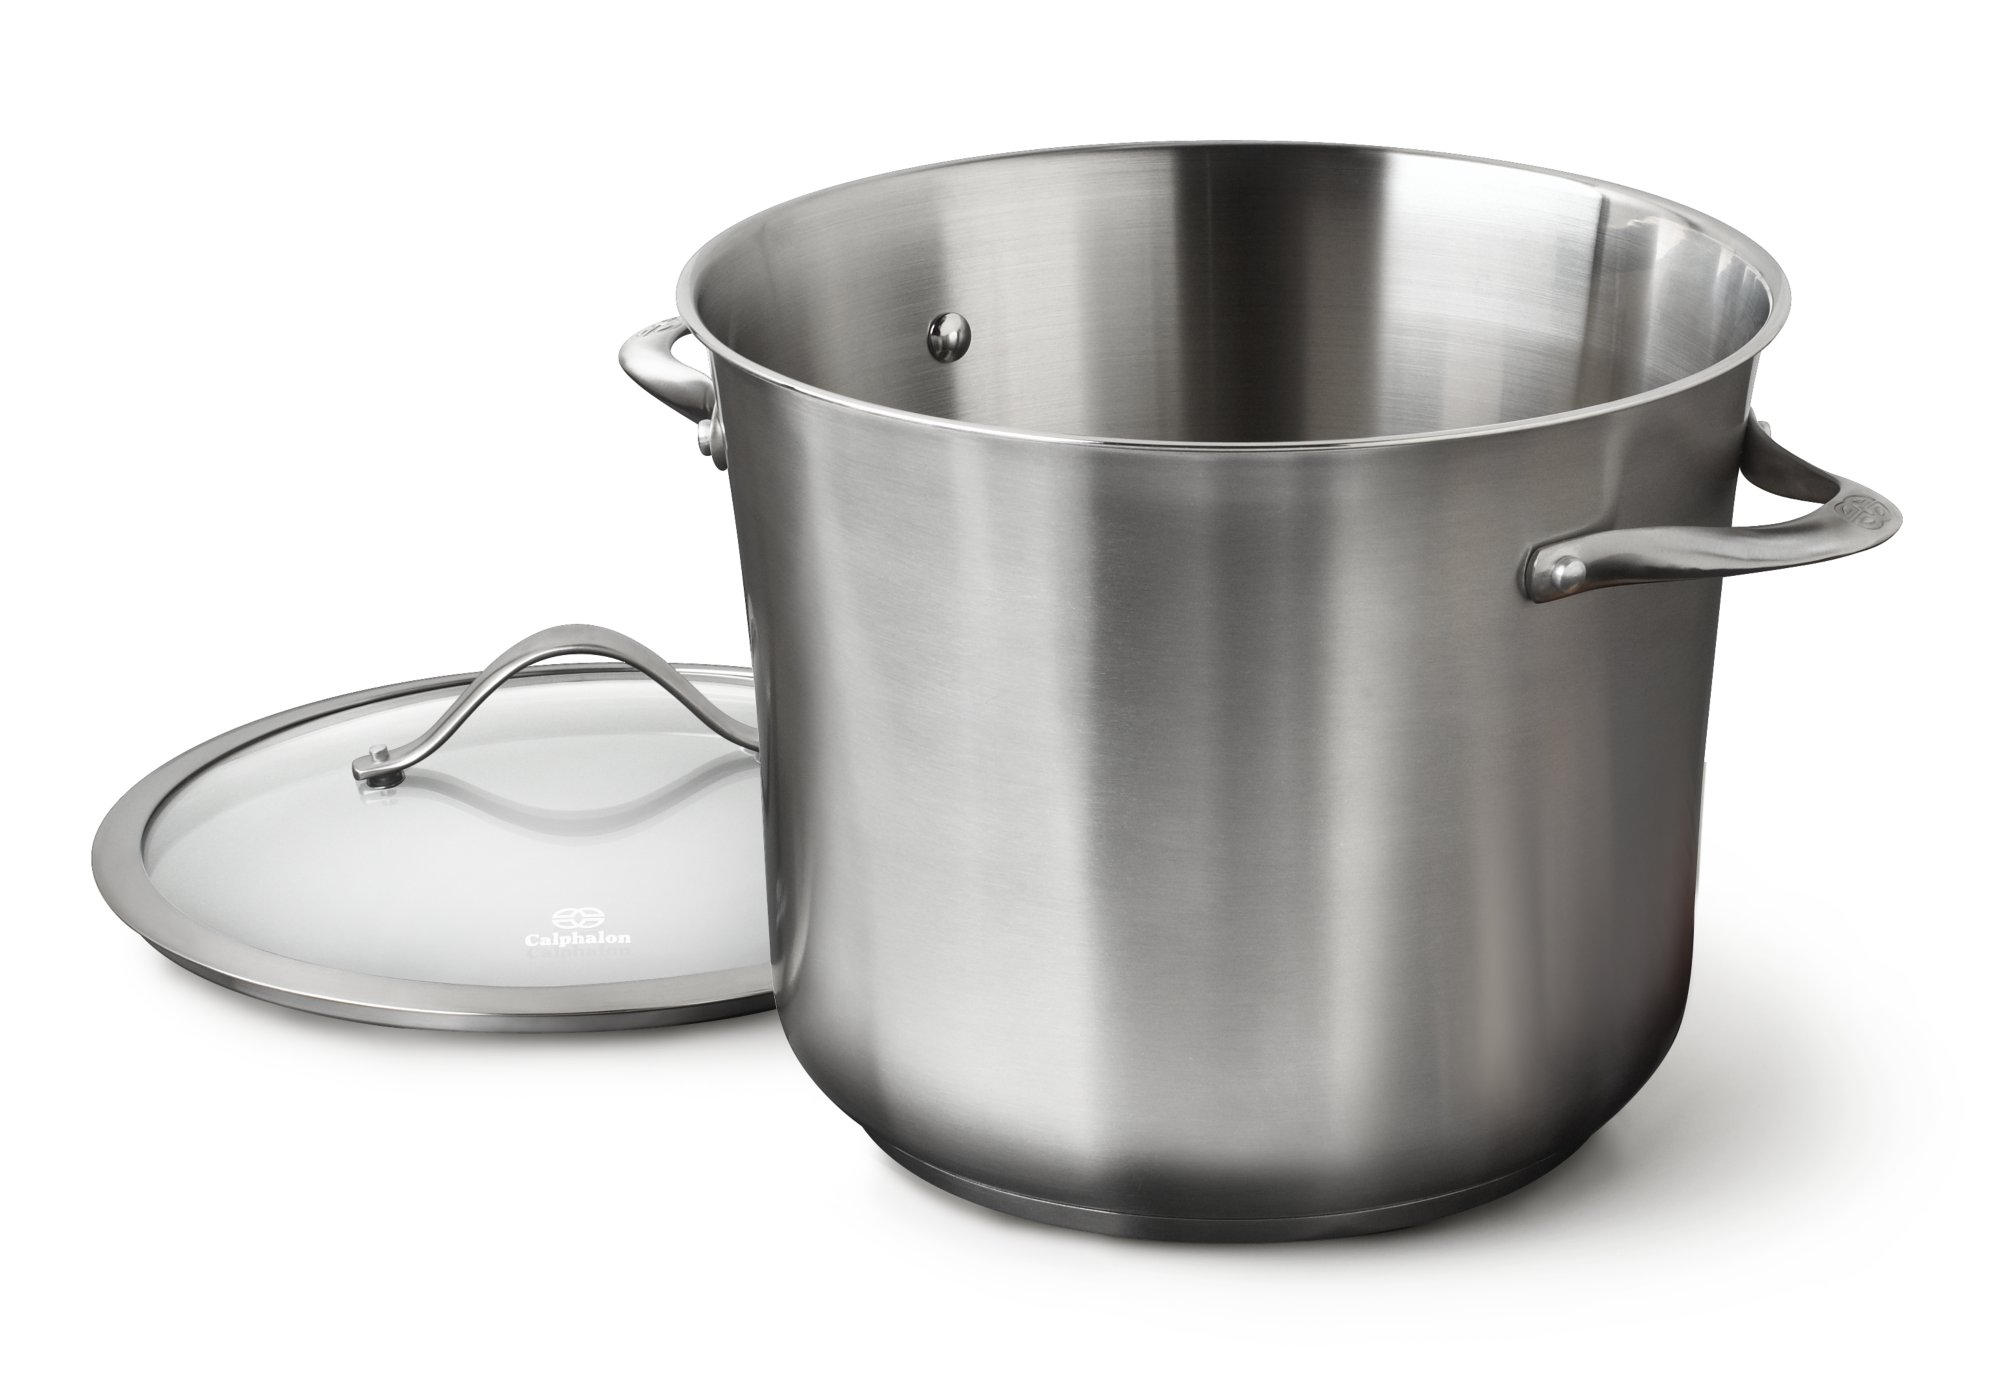 Calphalon Contemporary Stainless 12-qt. Stock Pot with Cover